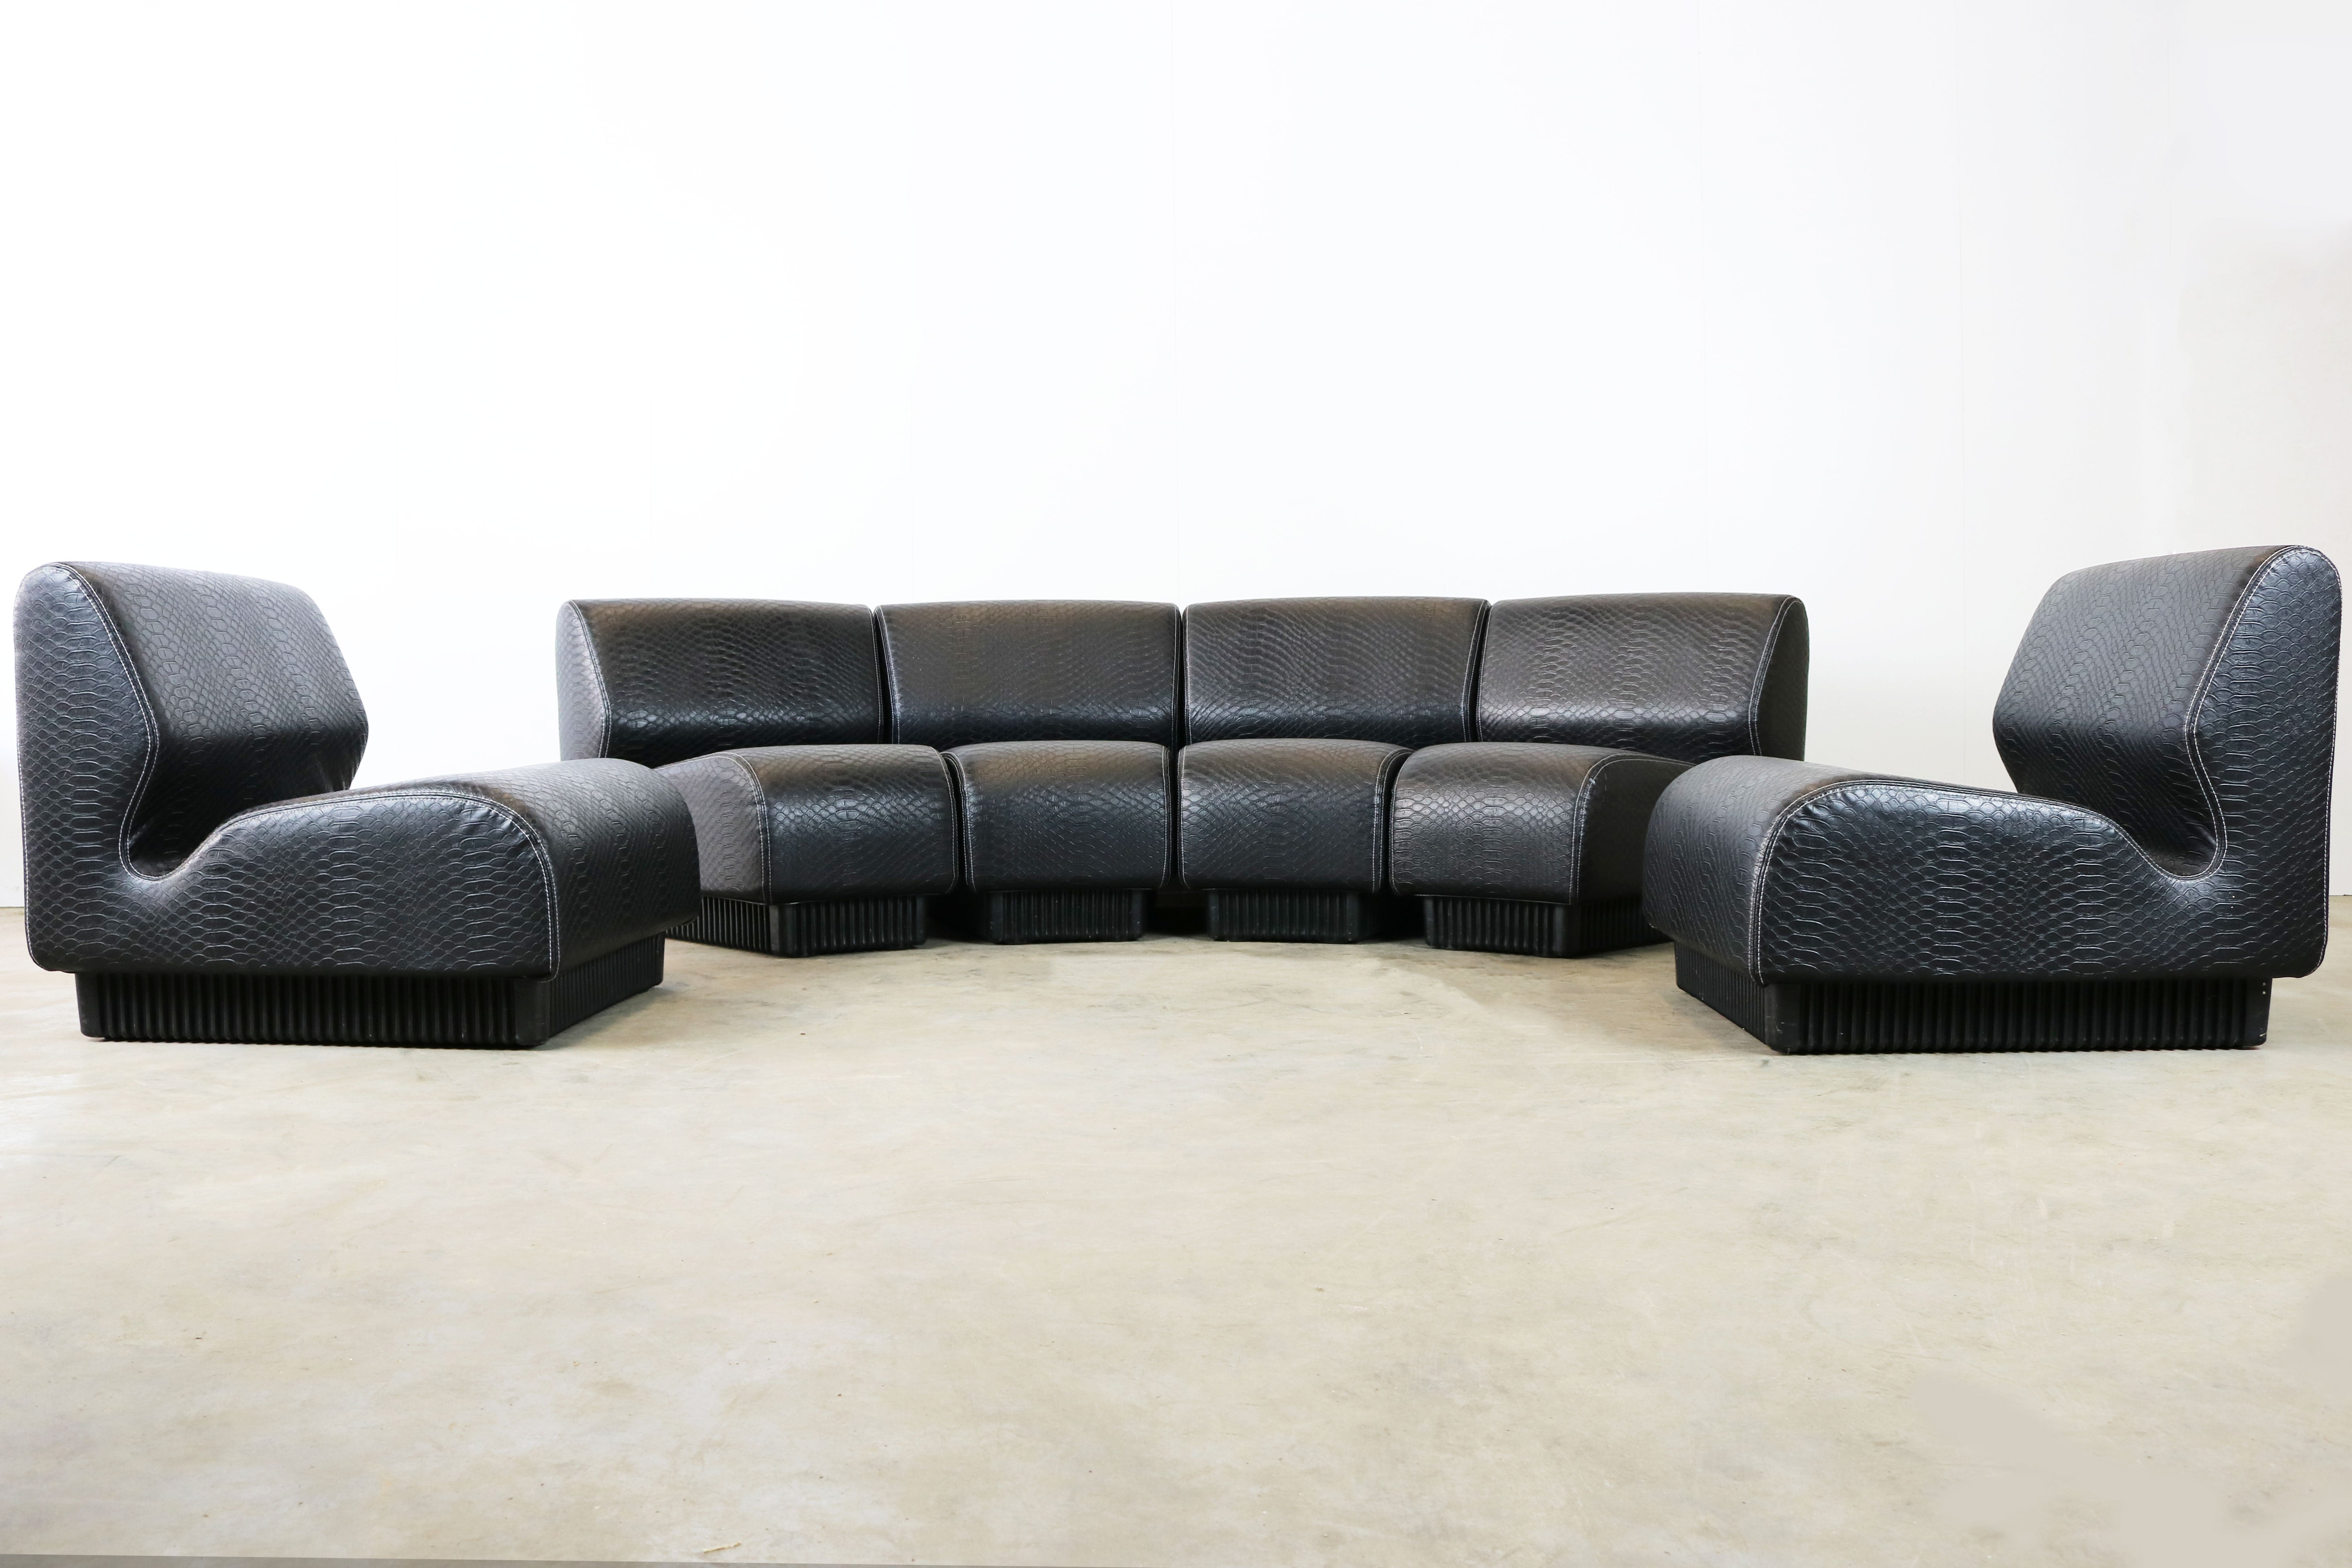 Excellent Midcentury Modular Sofa By Don Chadwick For Herman Miller 1970 Black Snakeskin Gmtry Best Dining Table And Chair Ideas Images Gmtryco